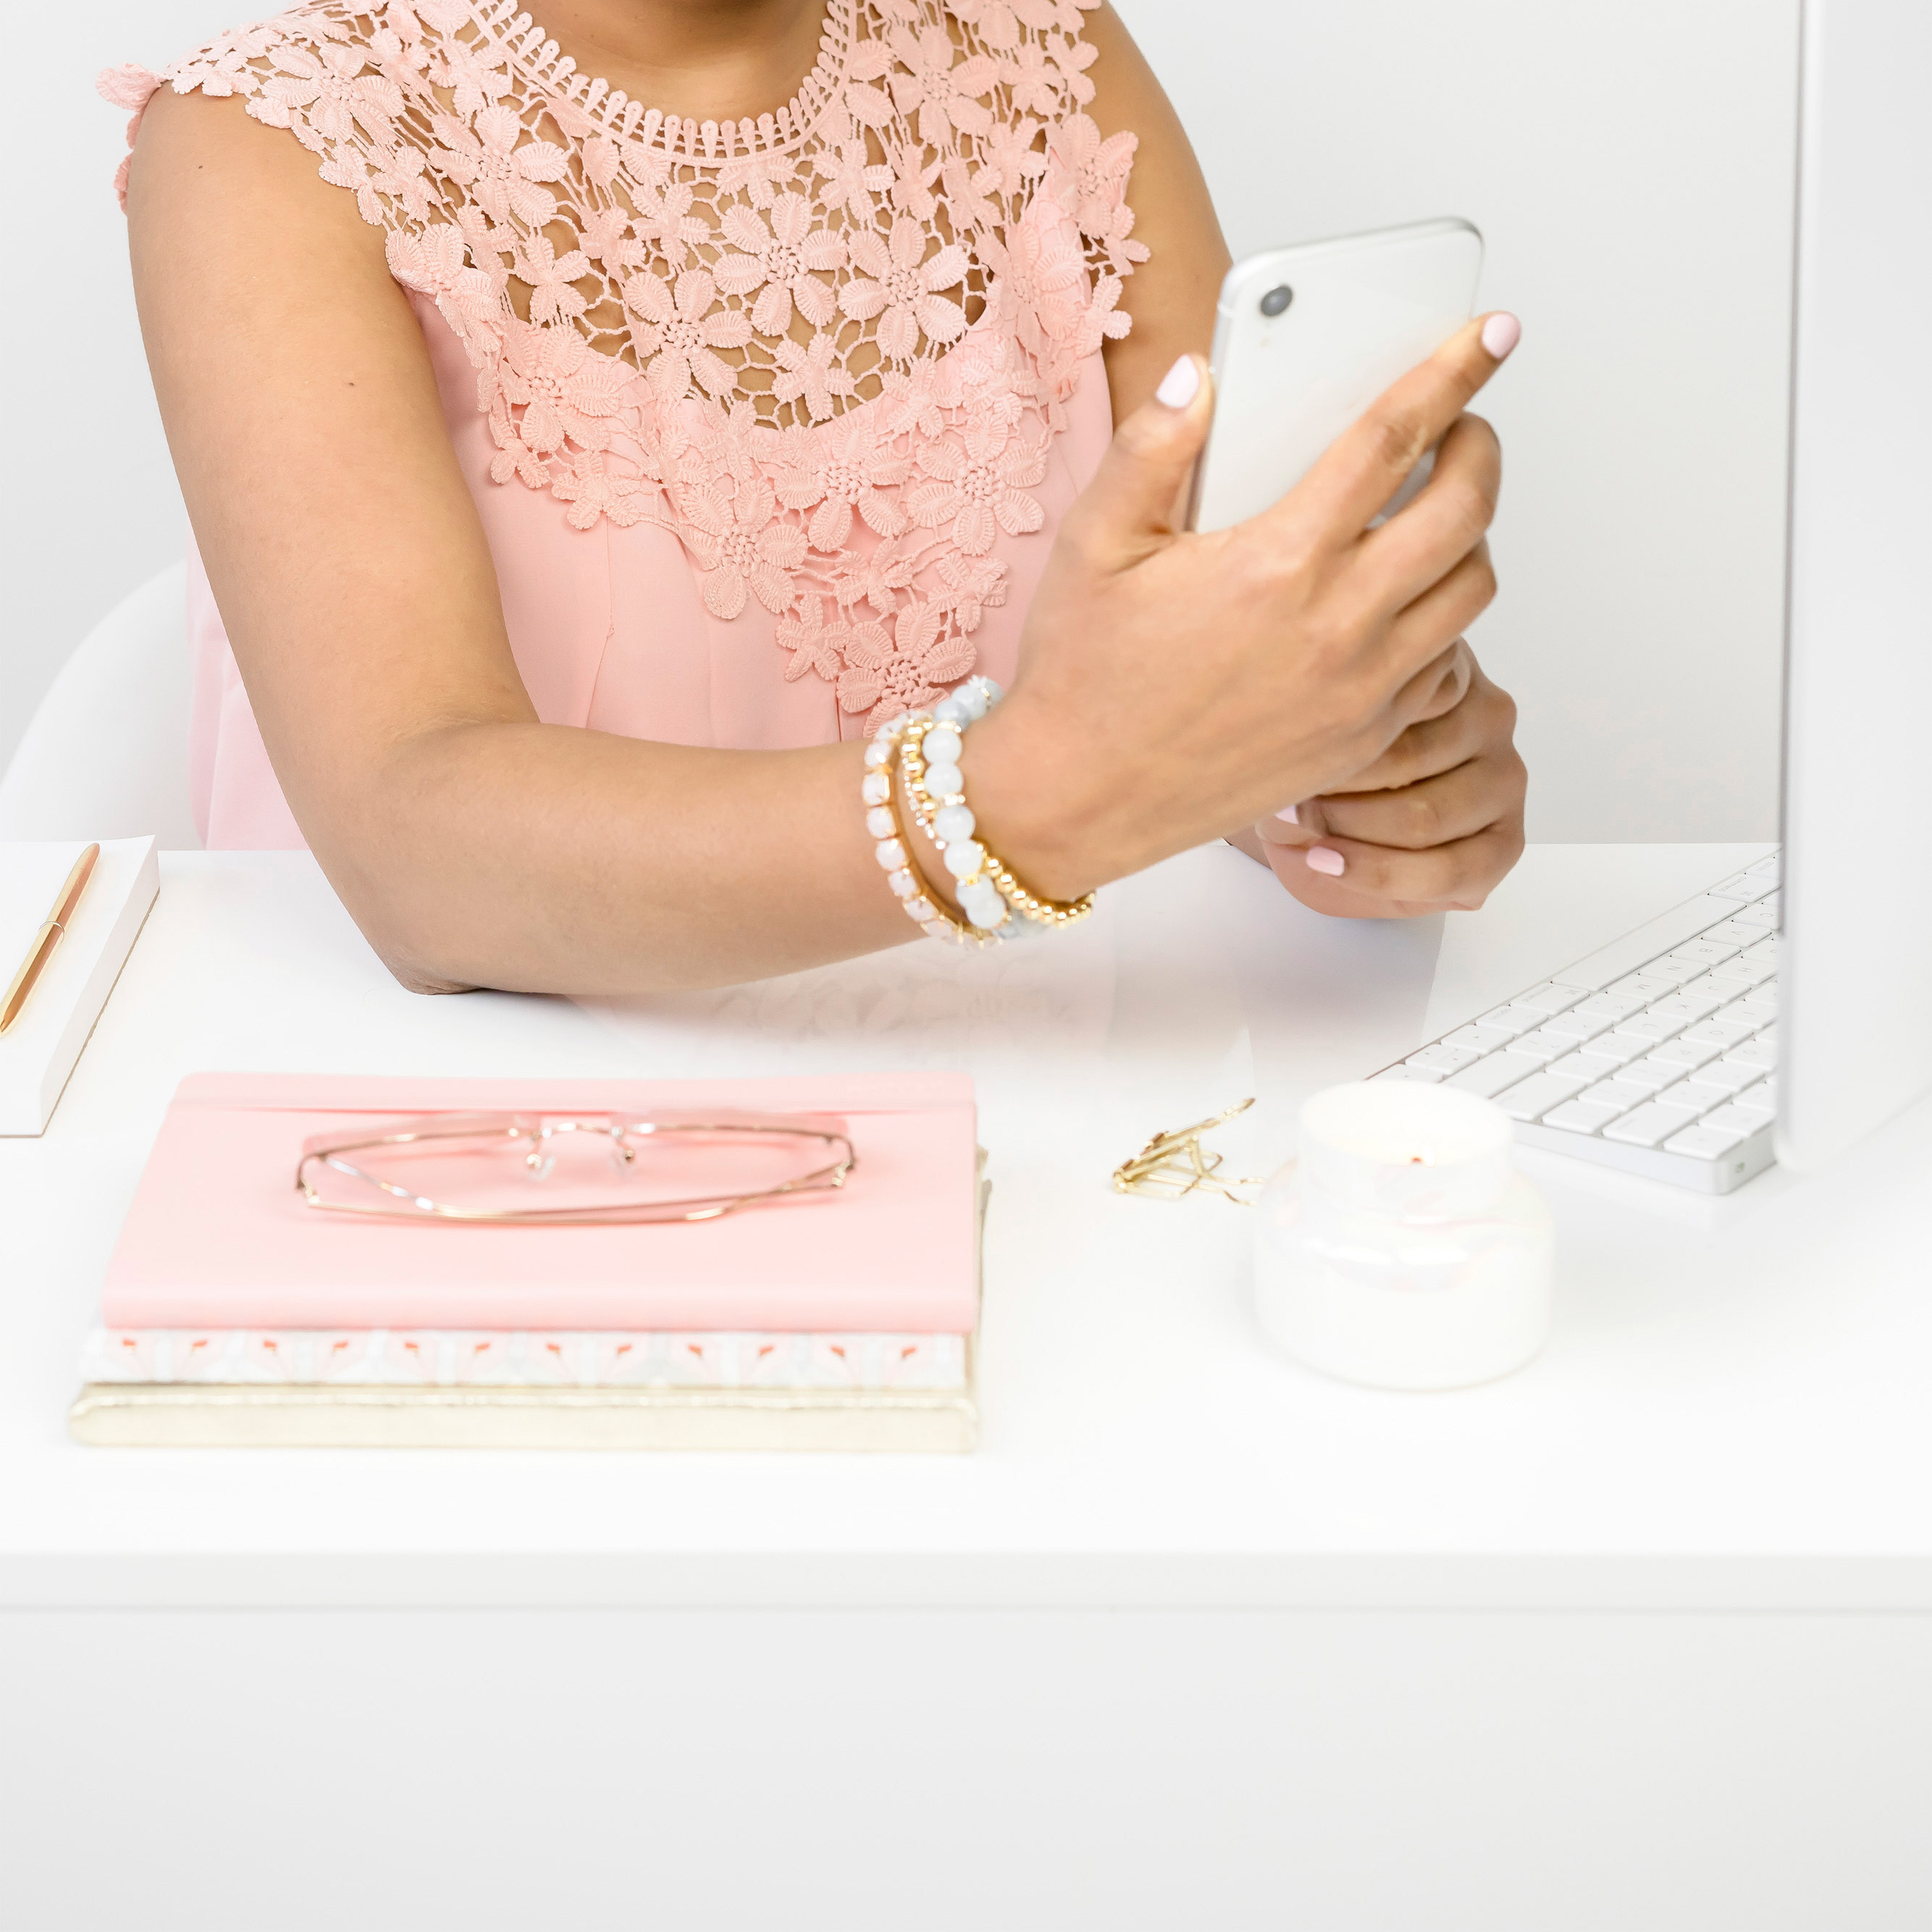 women holding phone wearing pink at a white desk